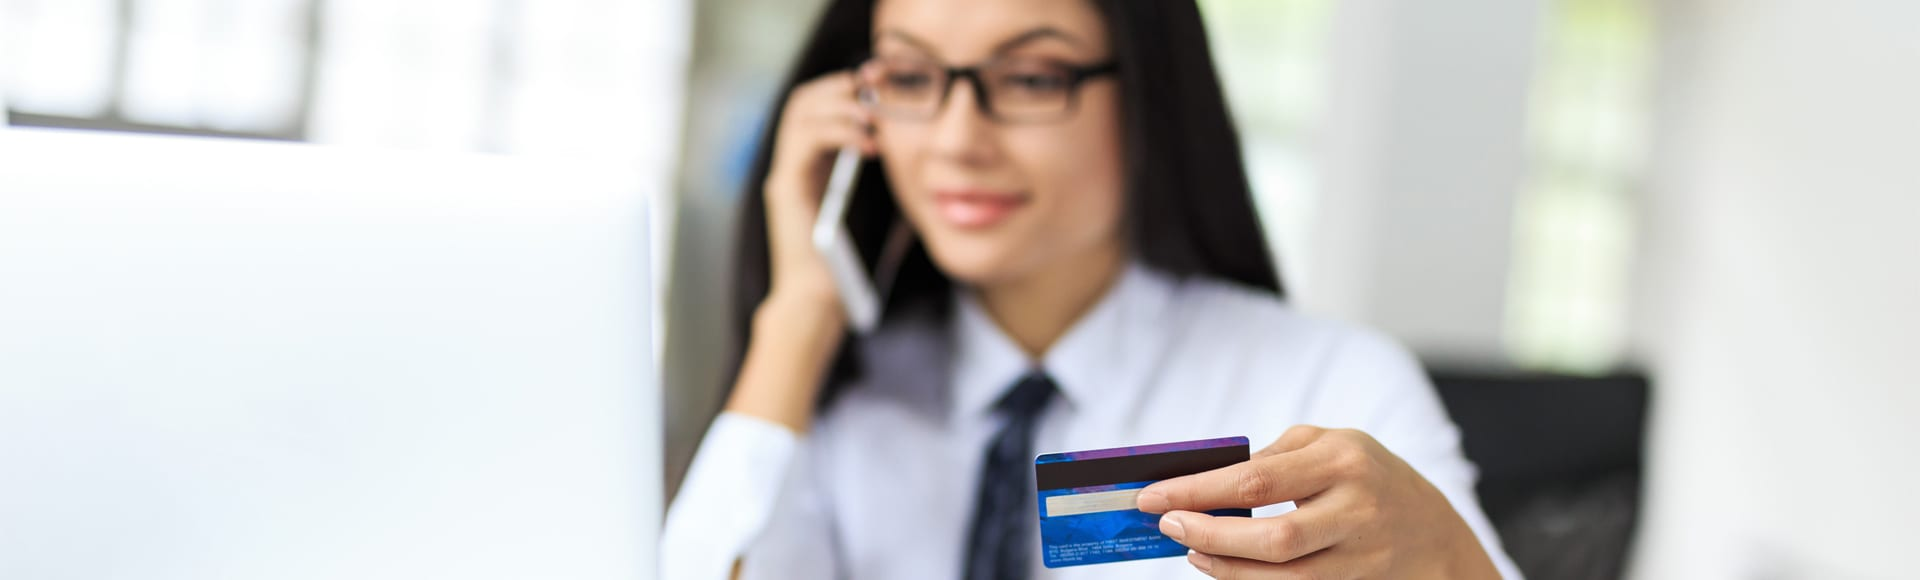 Smiling woman using credit card at workplace